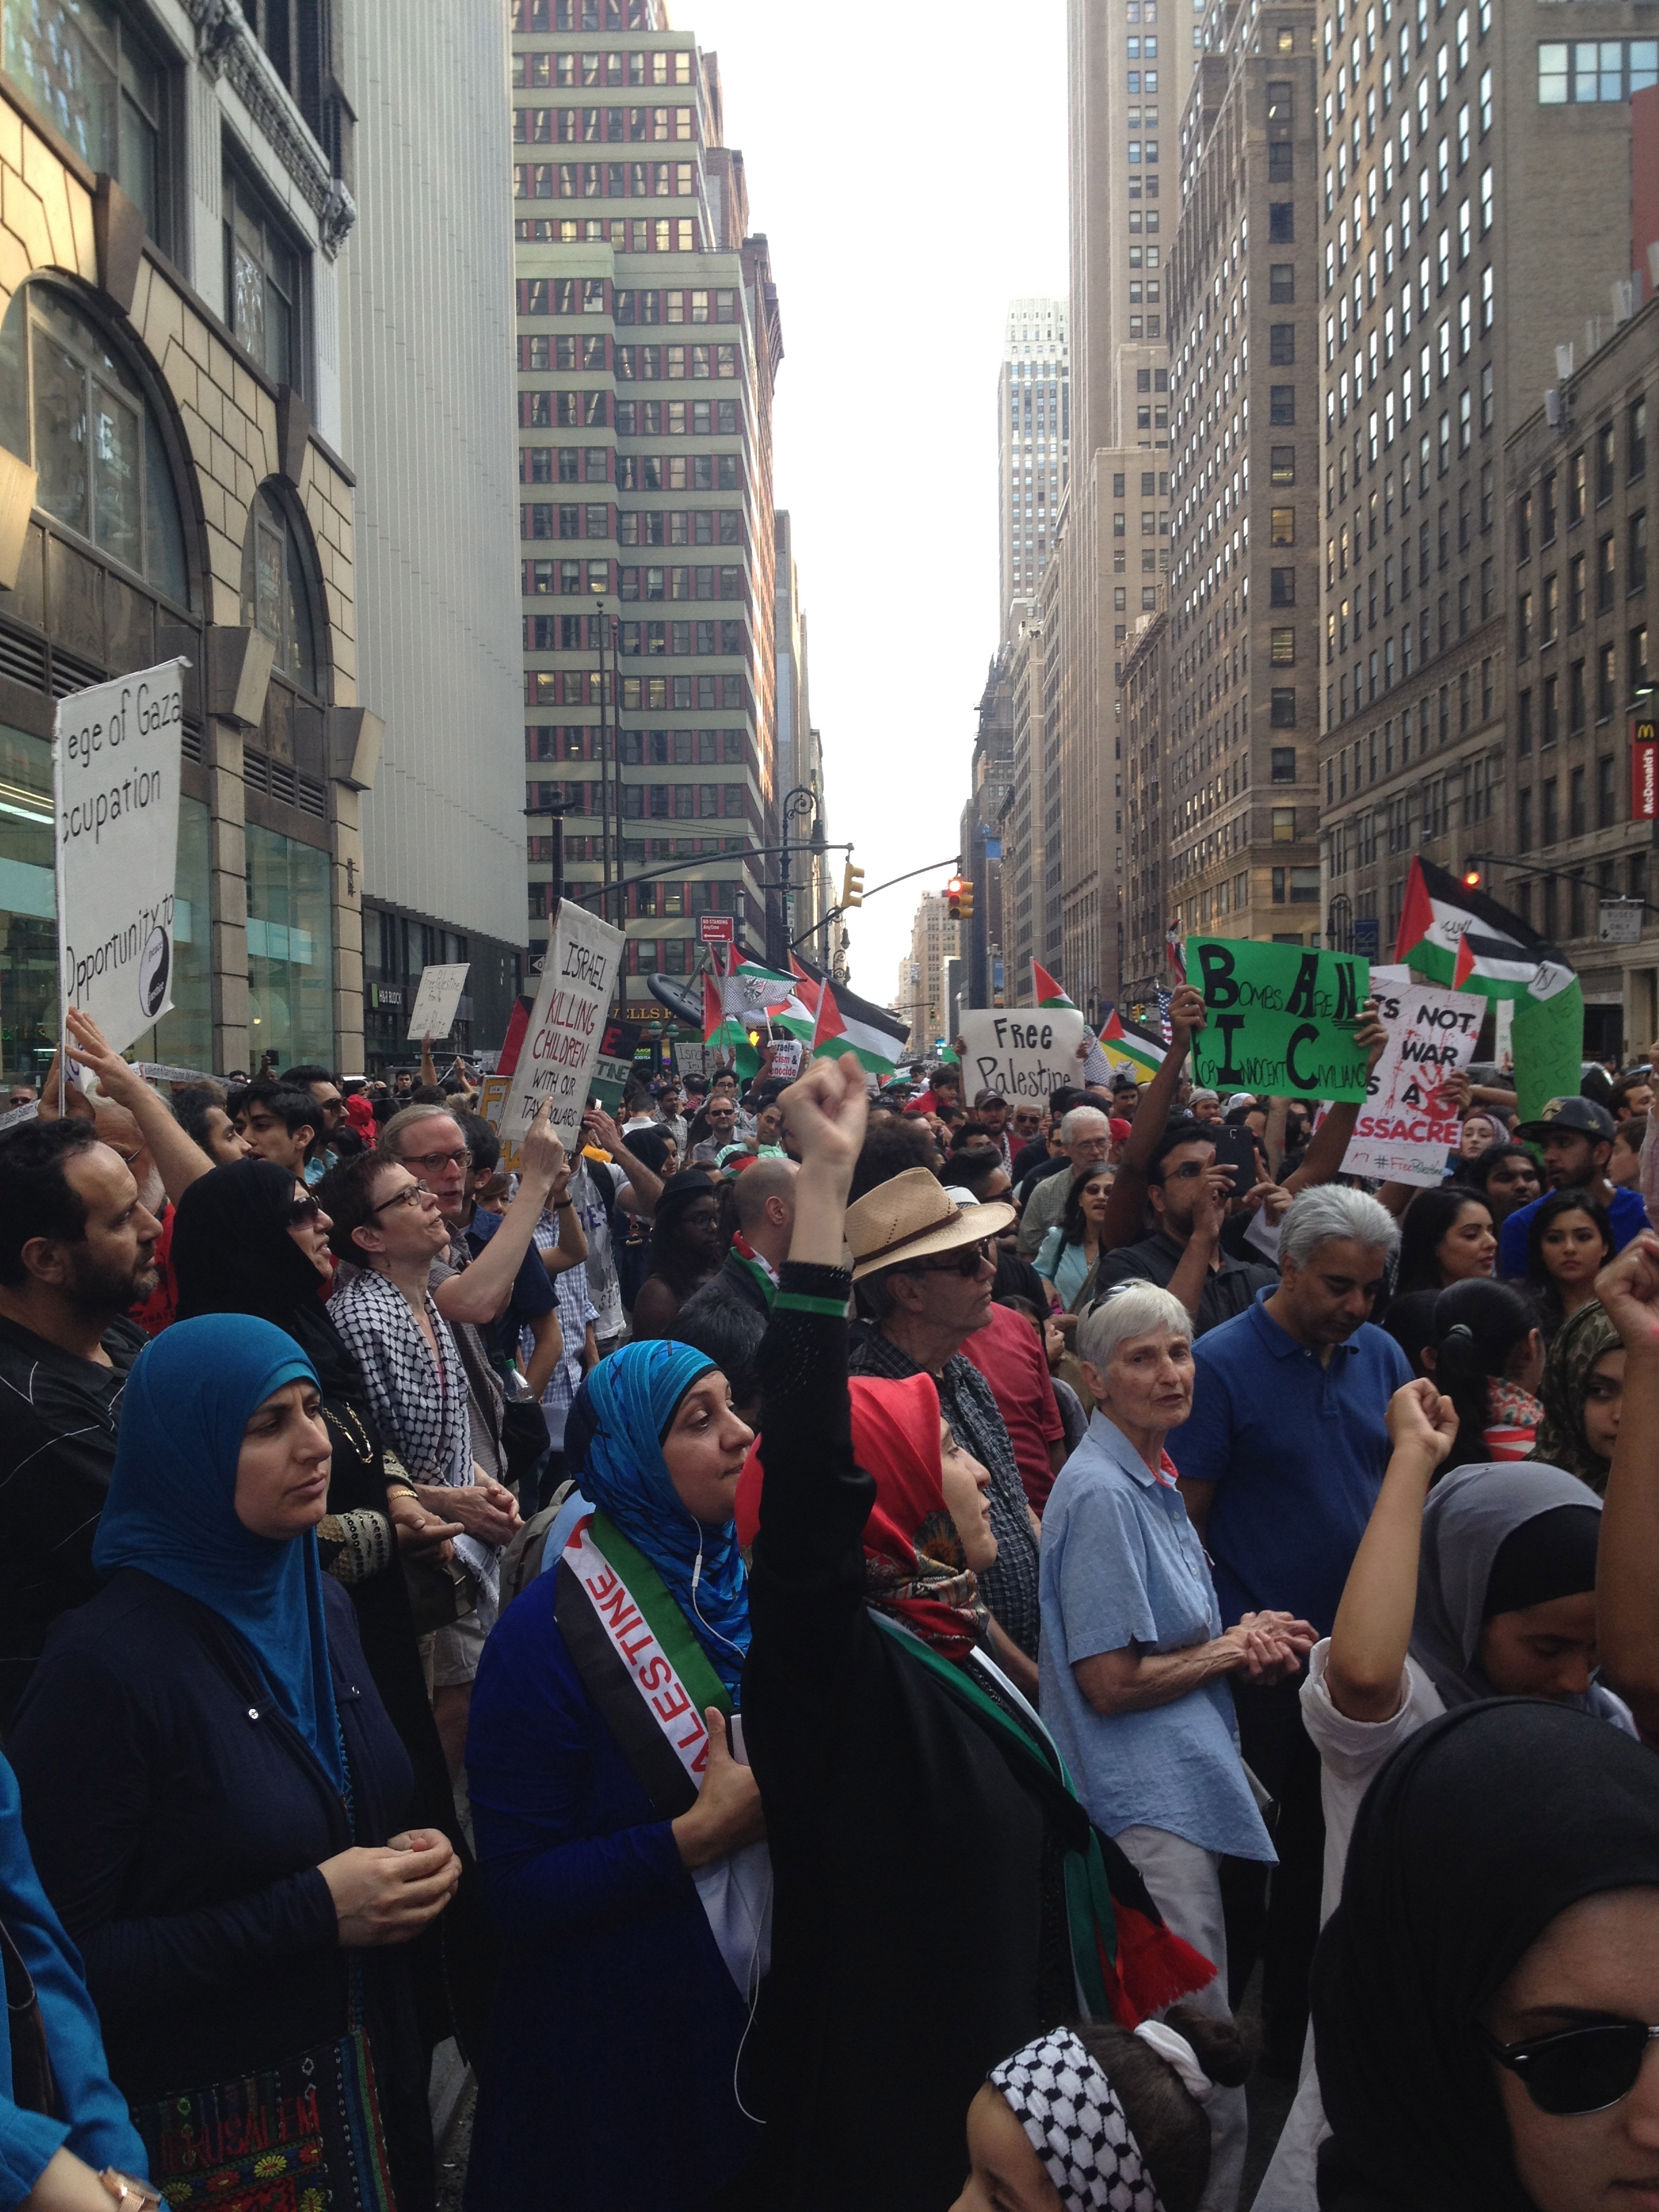 crowd of protesters in Times Square supporting Gaza